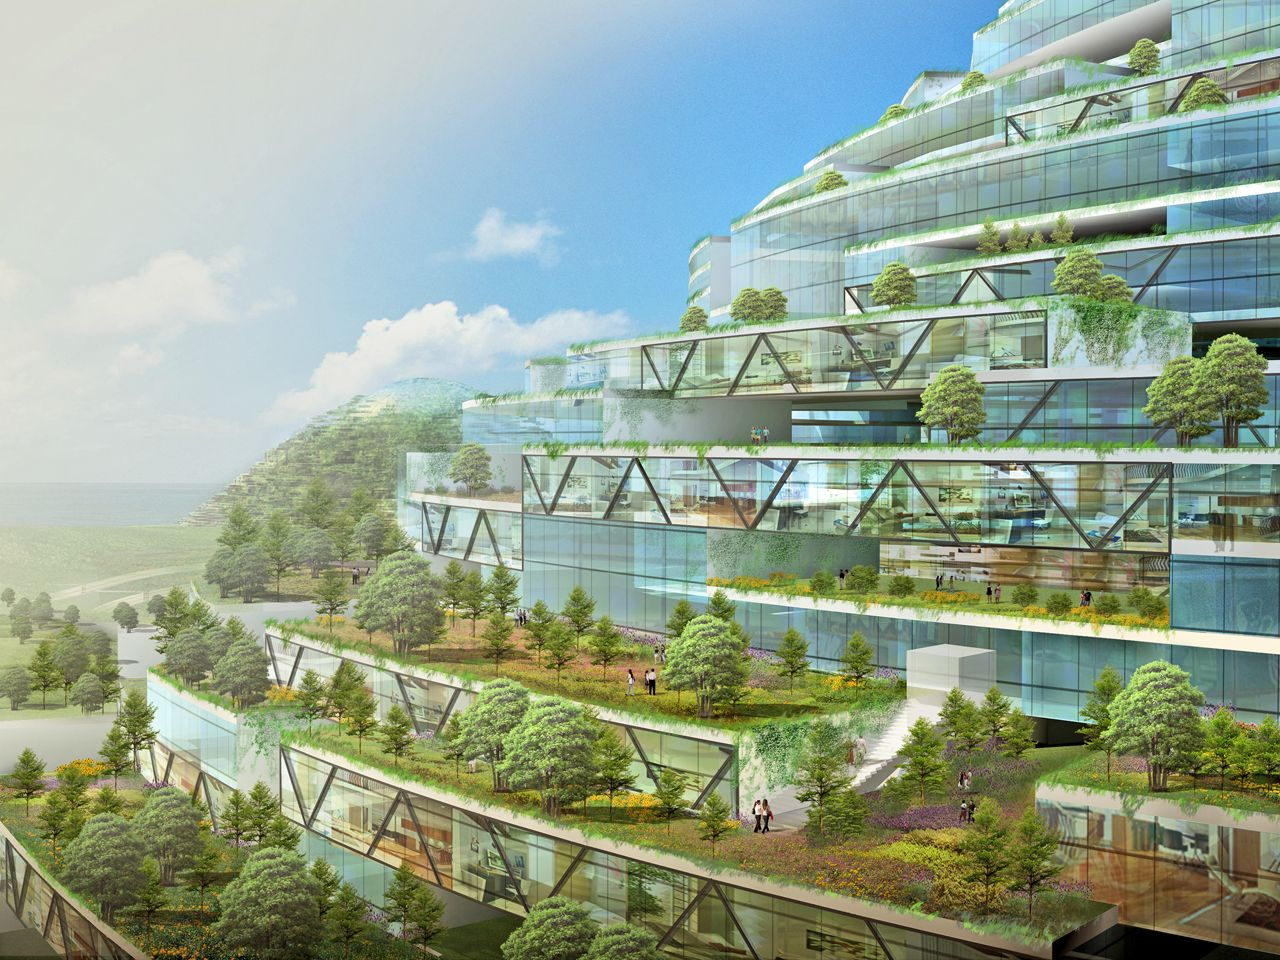 bio-mimmicry, climate change, and consciousness - green cities